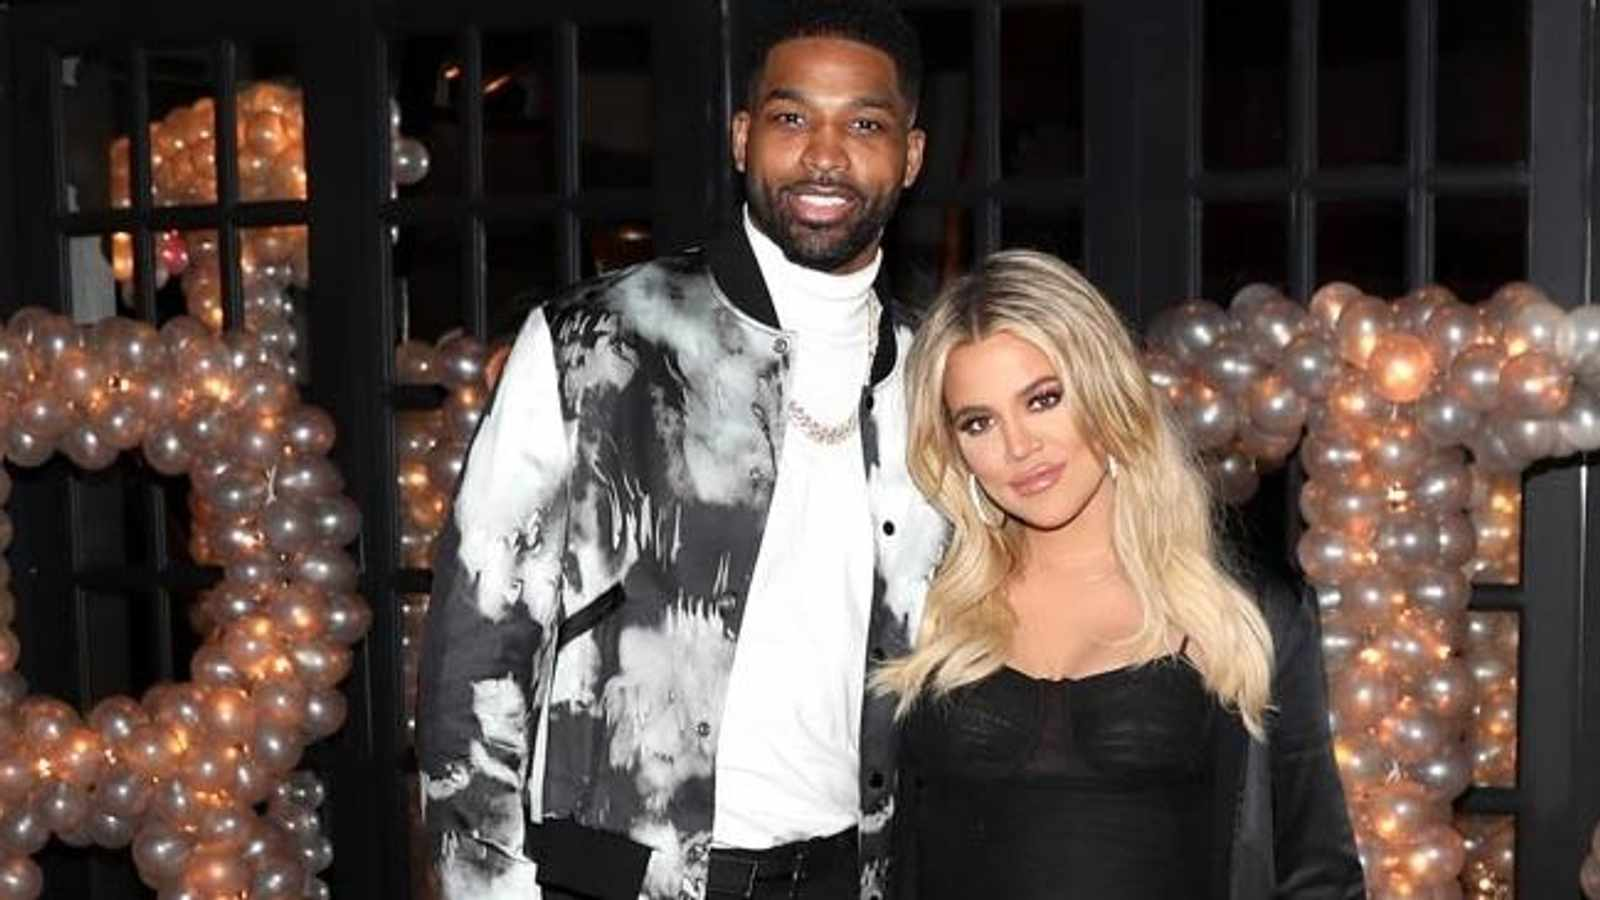 Tristan thanks Khloe for helping him